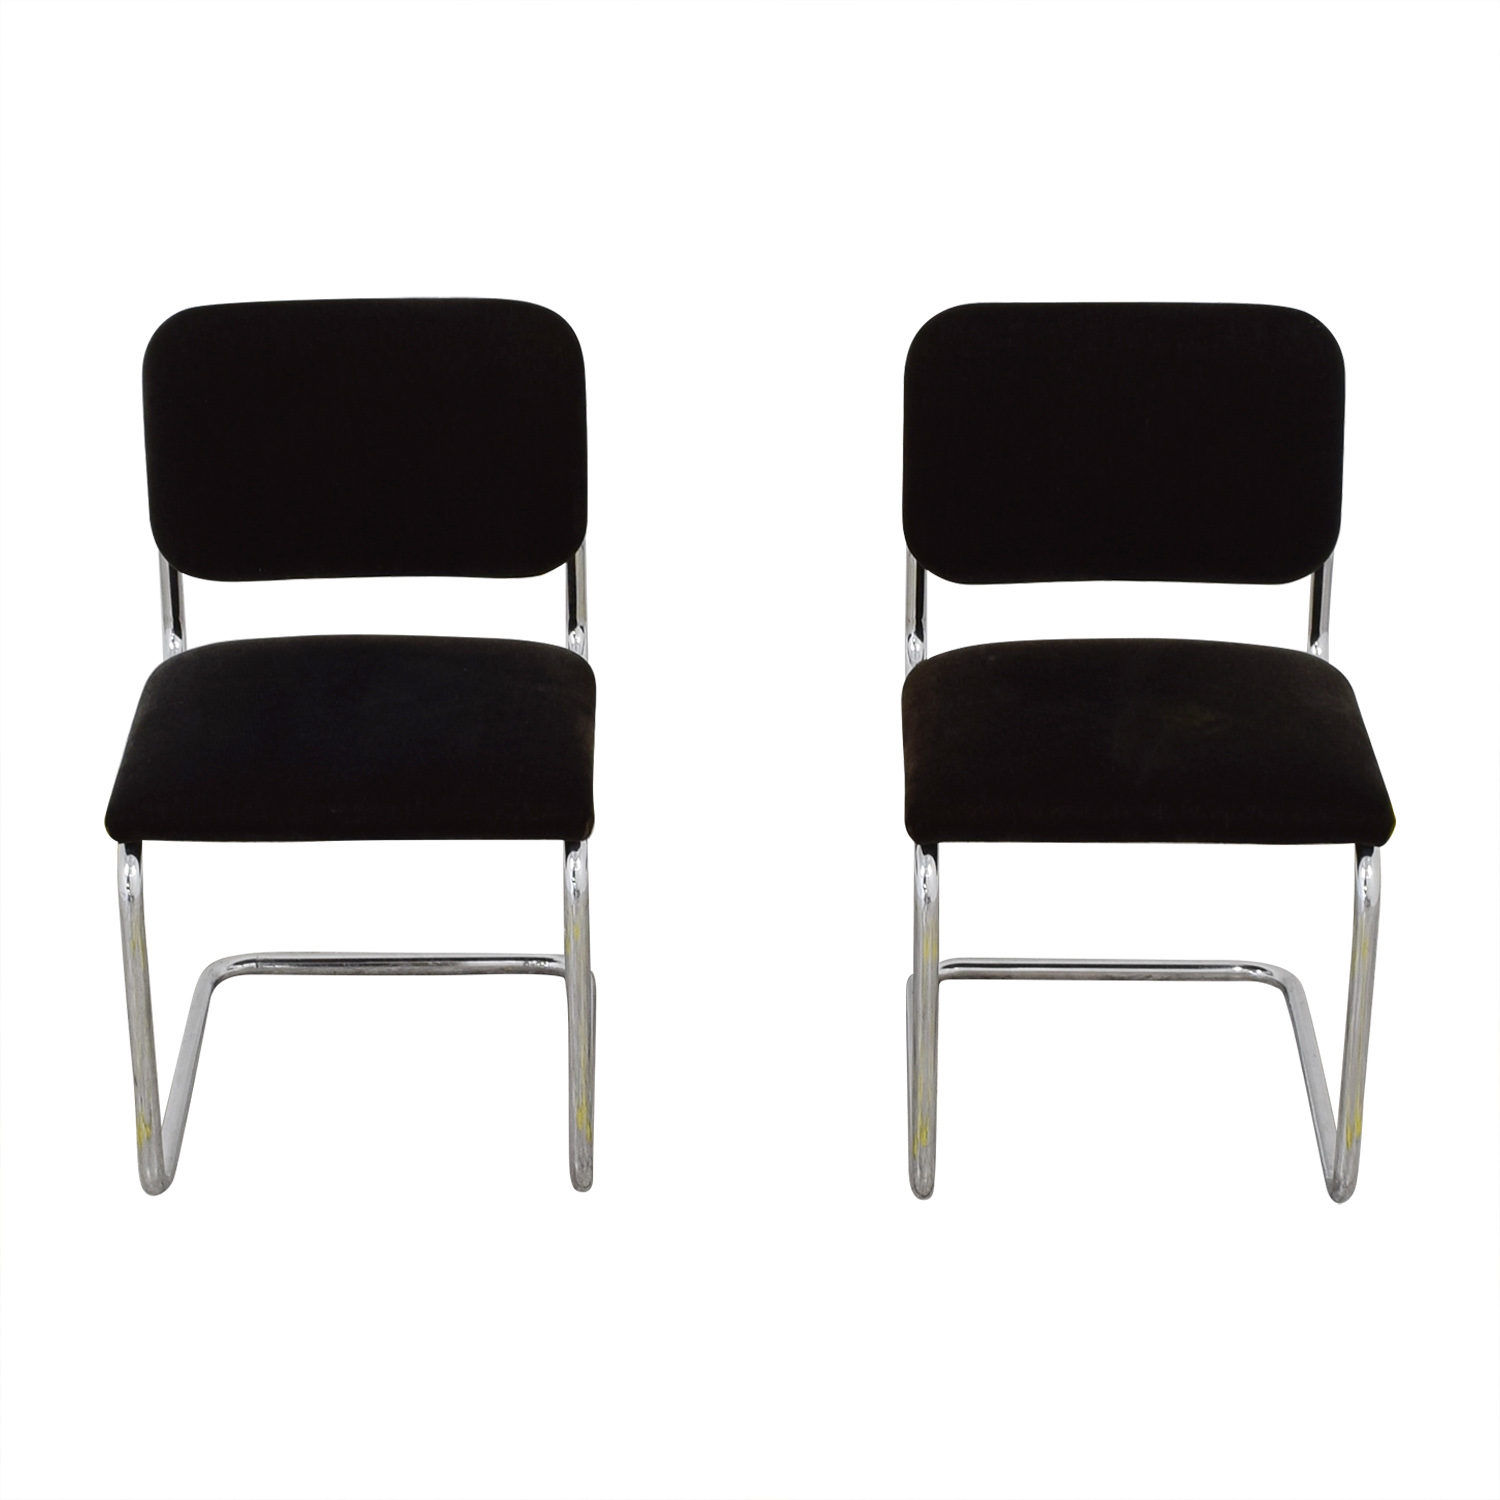 Knoll Knoll Marcel Breuer Cesca Chairs coupon